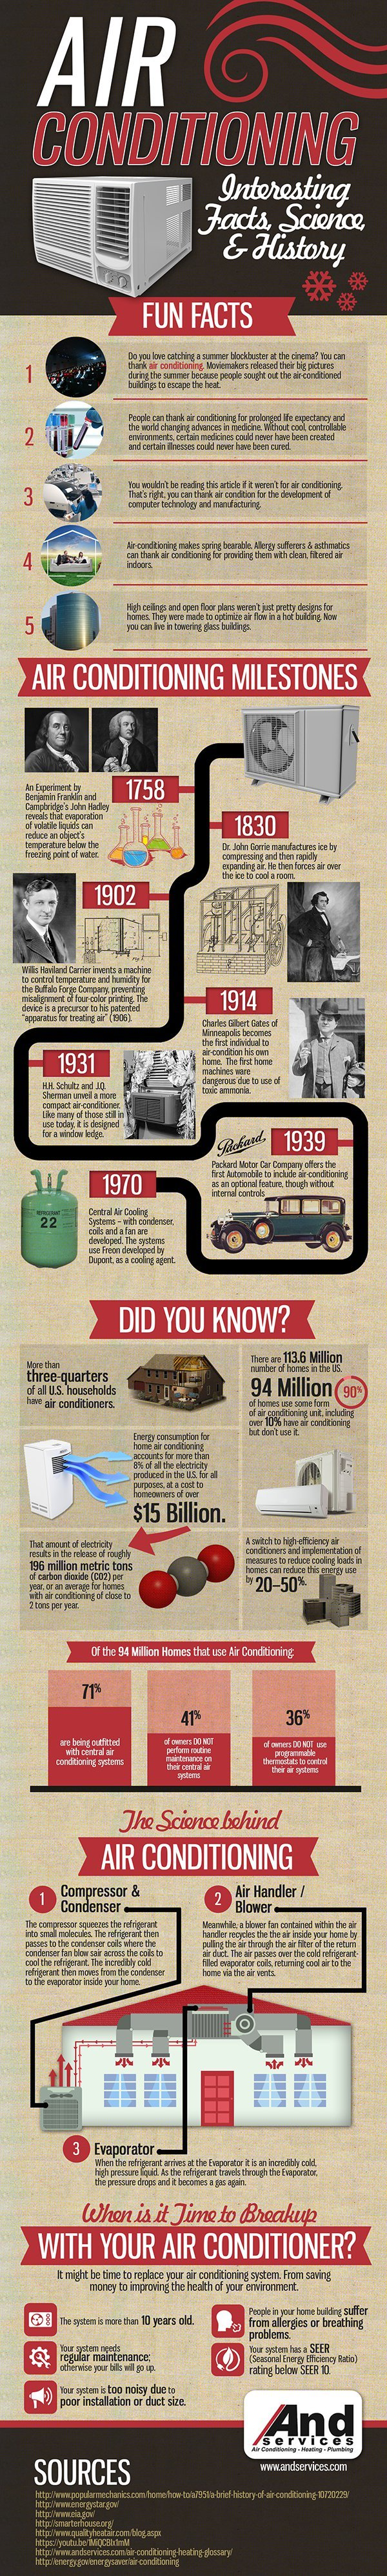 Air Conditioning Interesting Facts Science and History